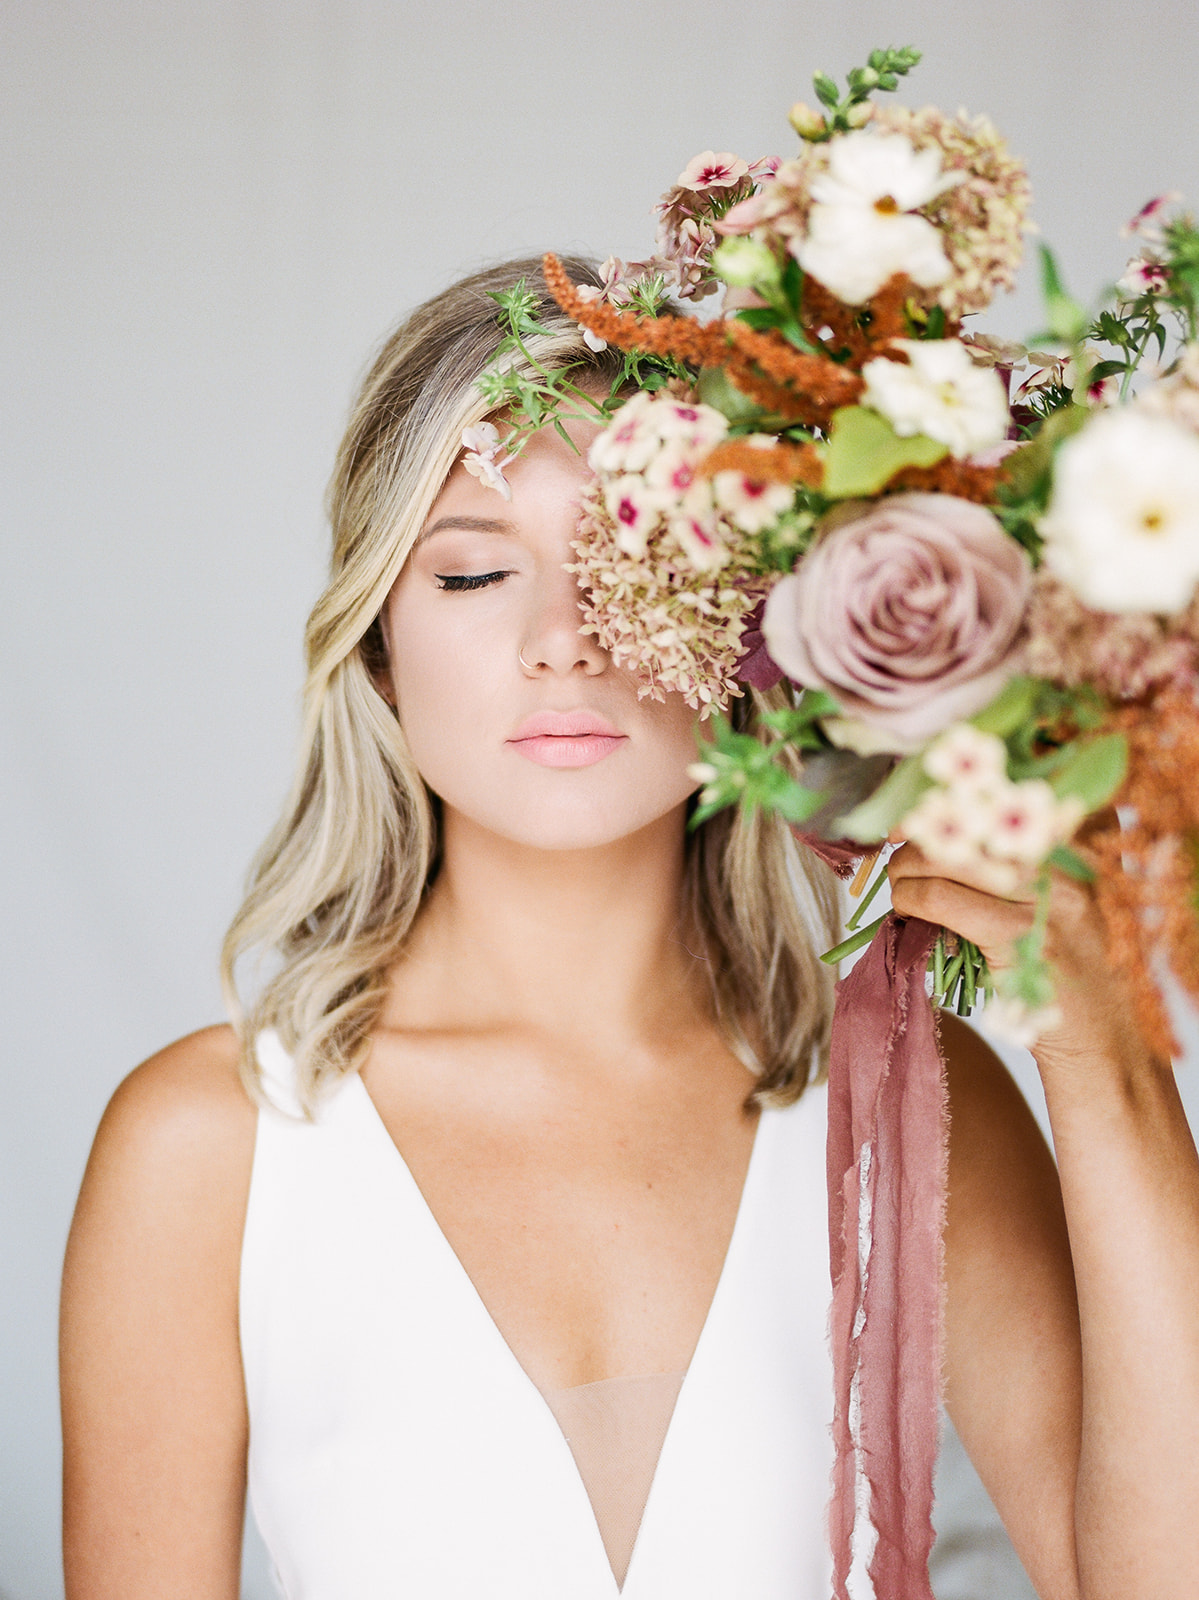 Olive and June Floral Co in Albany, NY